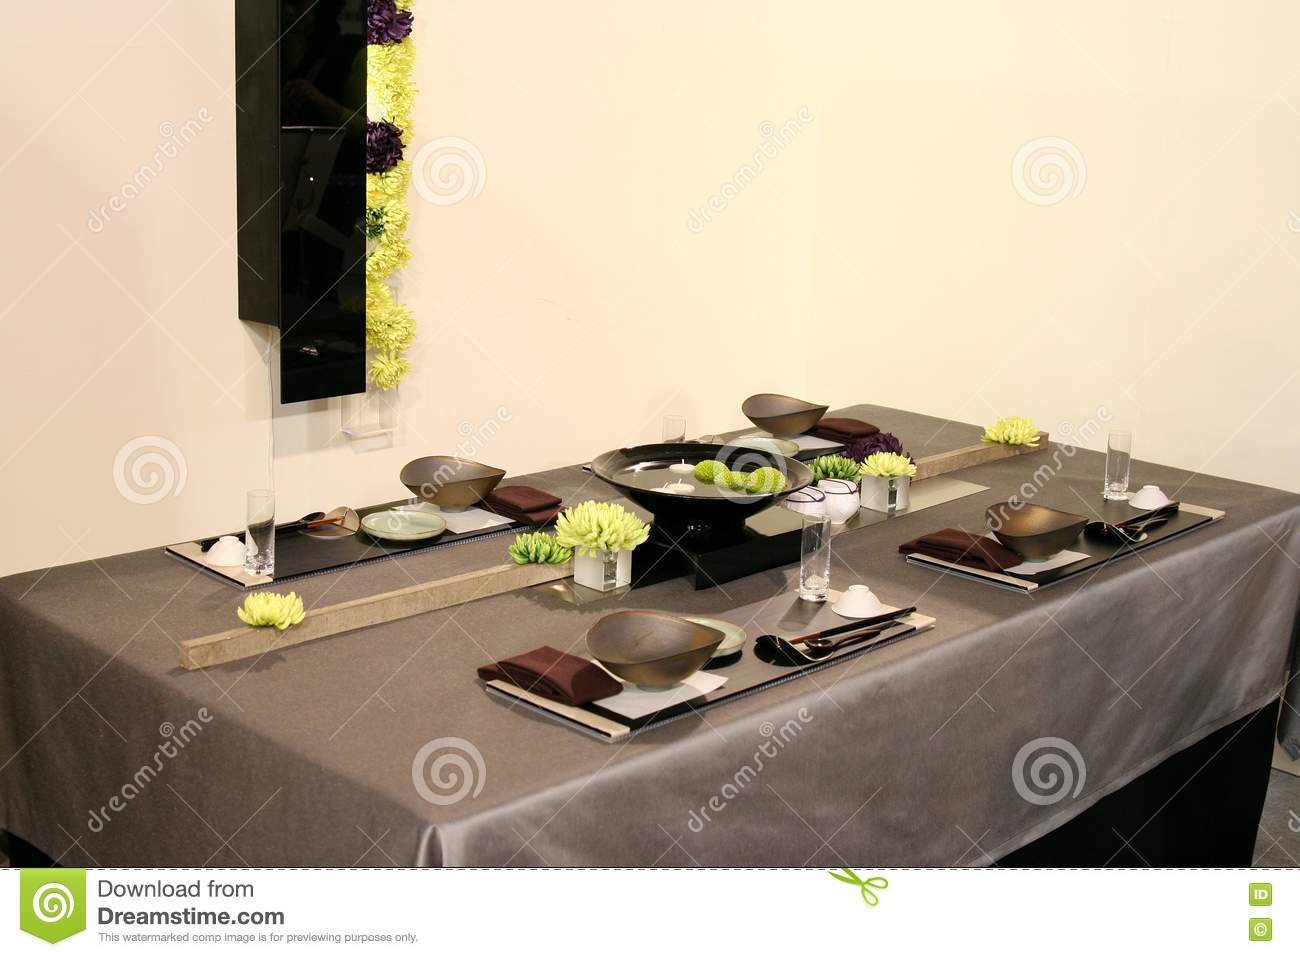 Table design in japan royalty free stock photo image for Table design japon